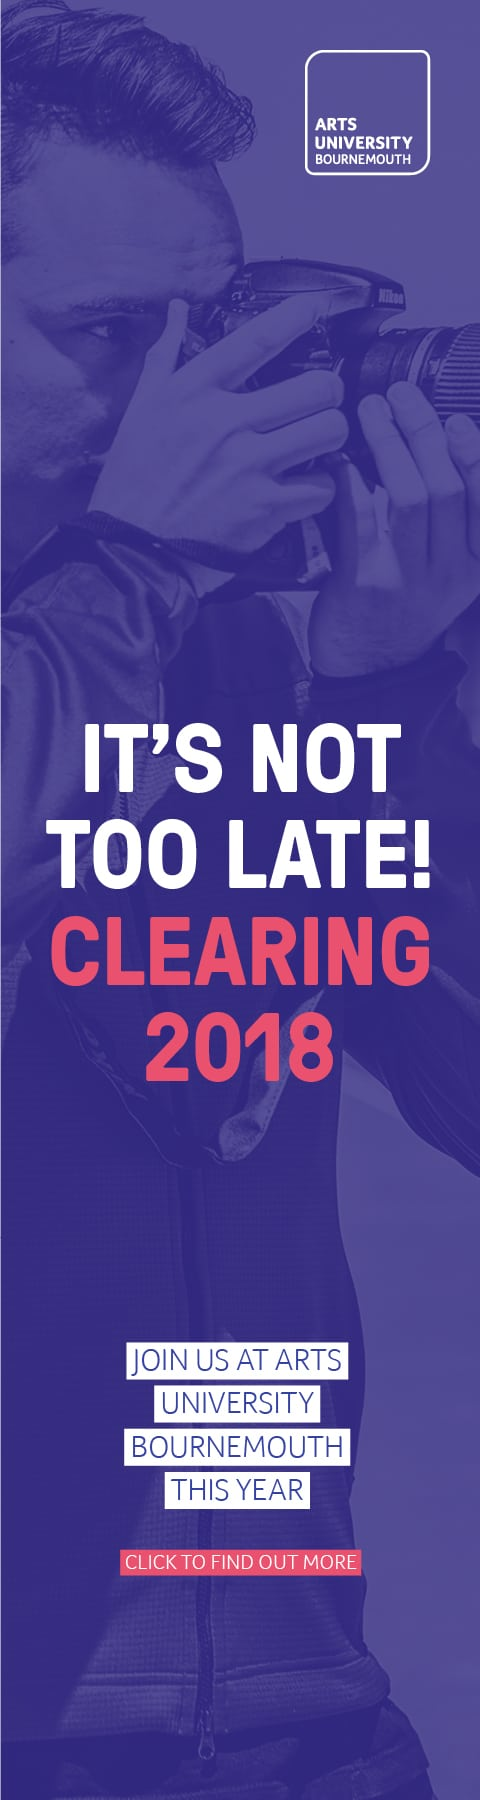 Clearing 2018